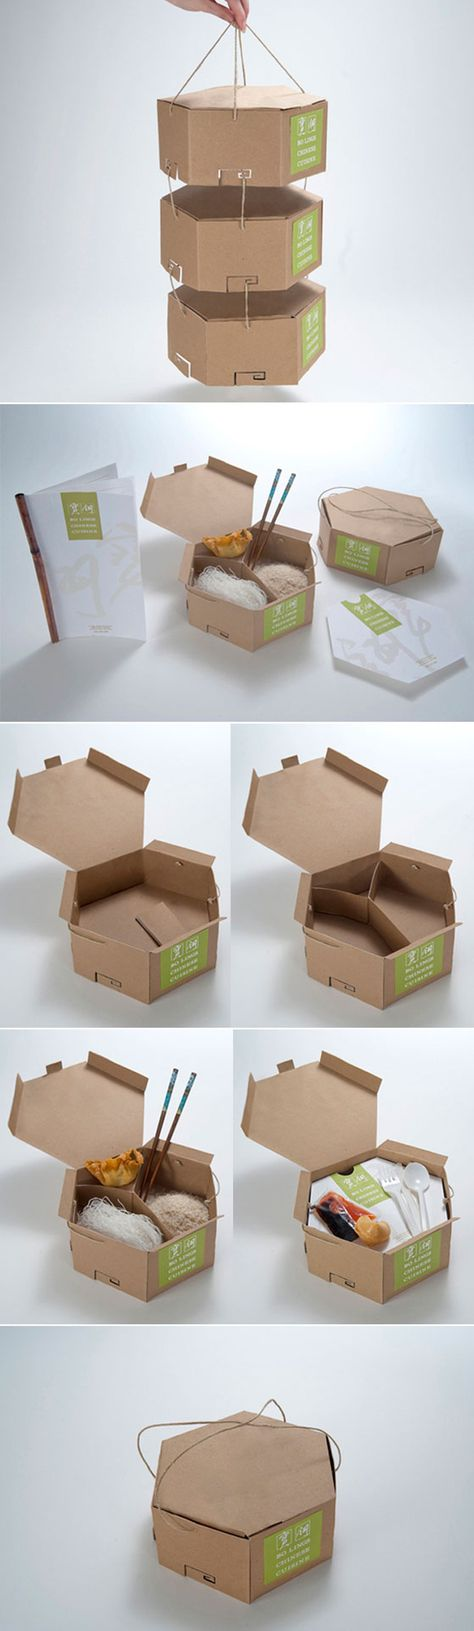 another great take-away #packaging #design and this one is #eco-friendly PD.